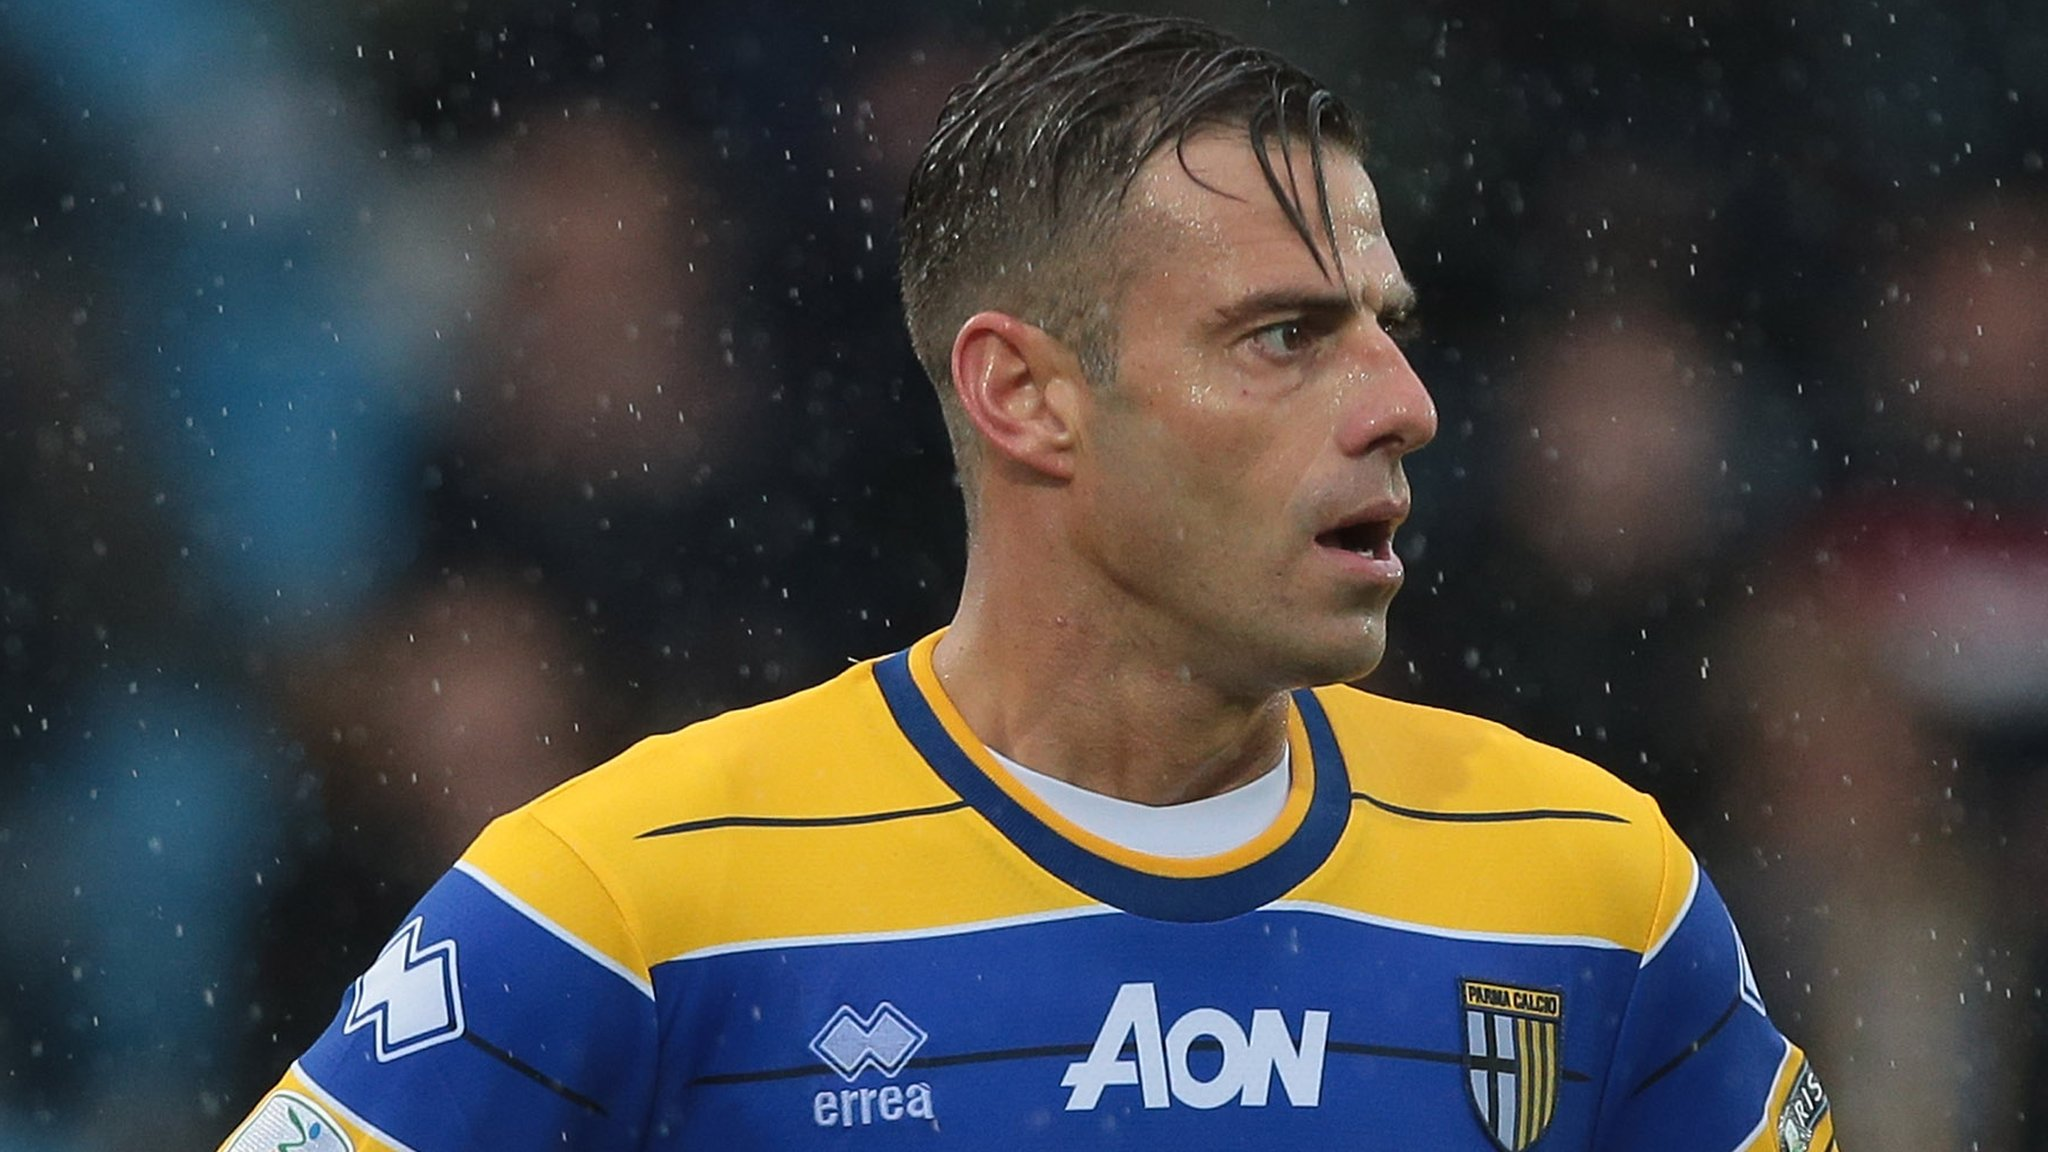 Parma striker banned for two years for match-fixing